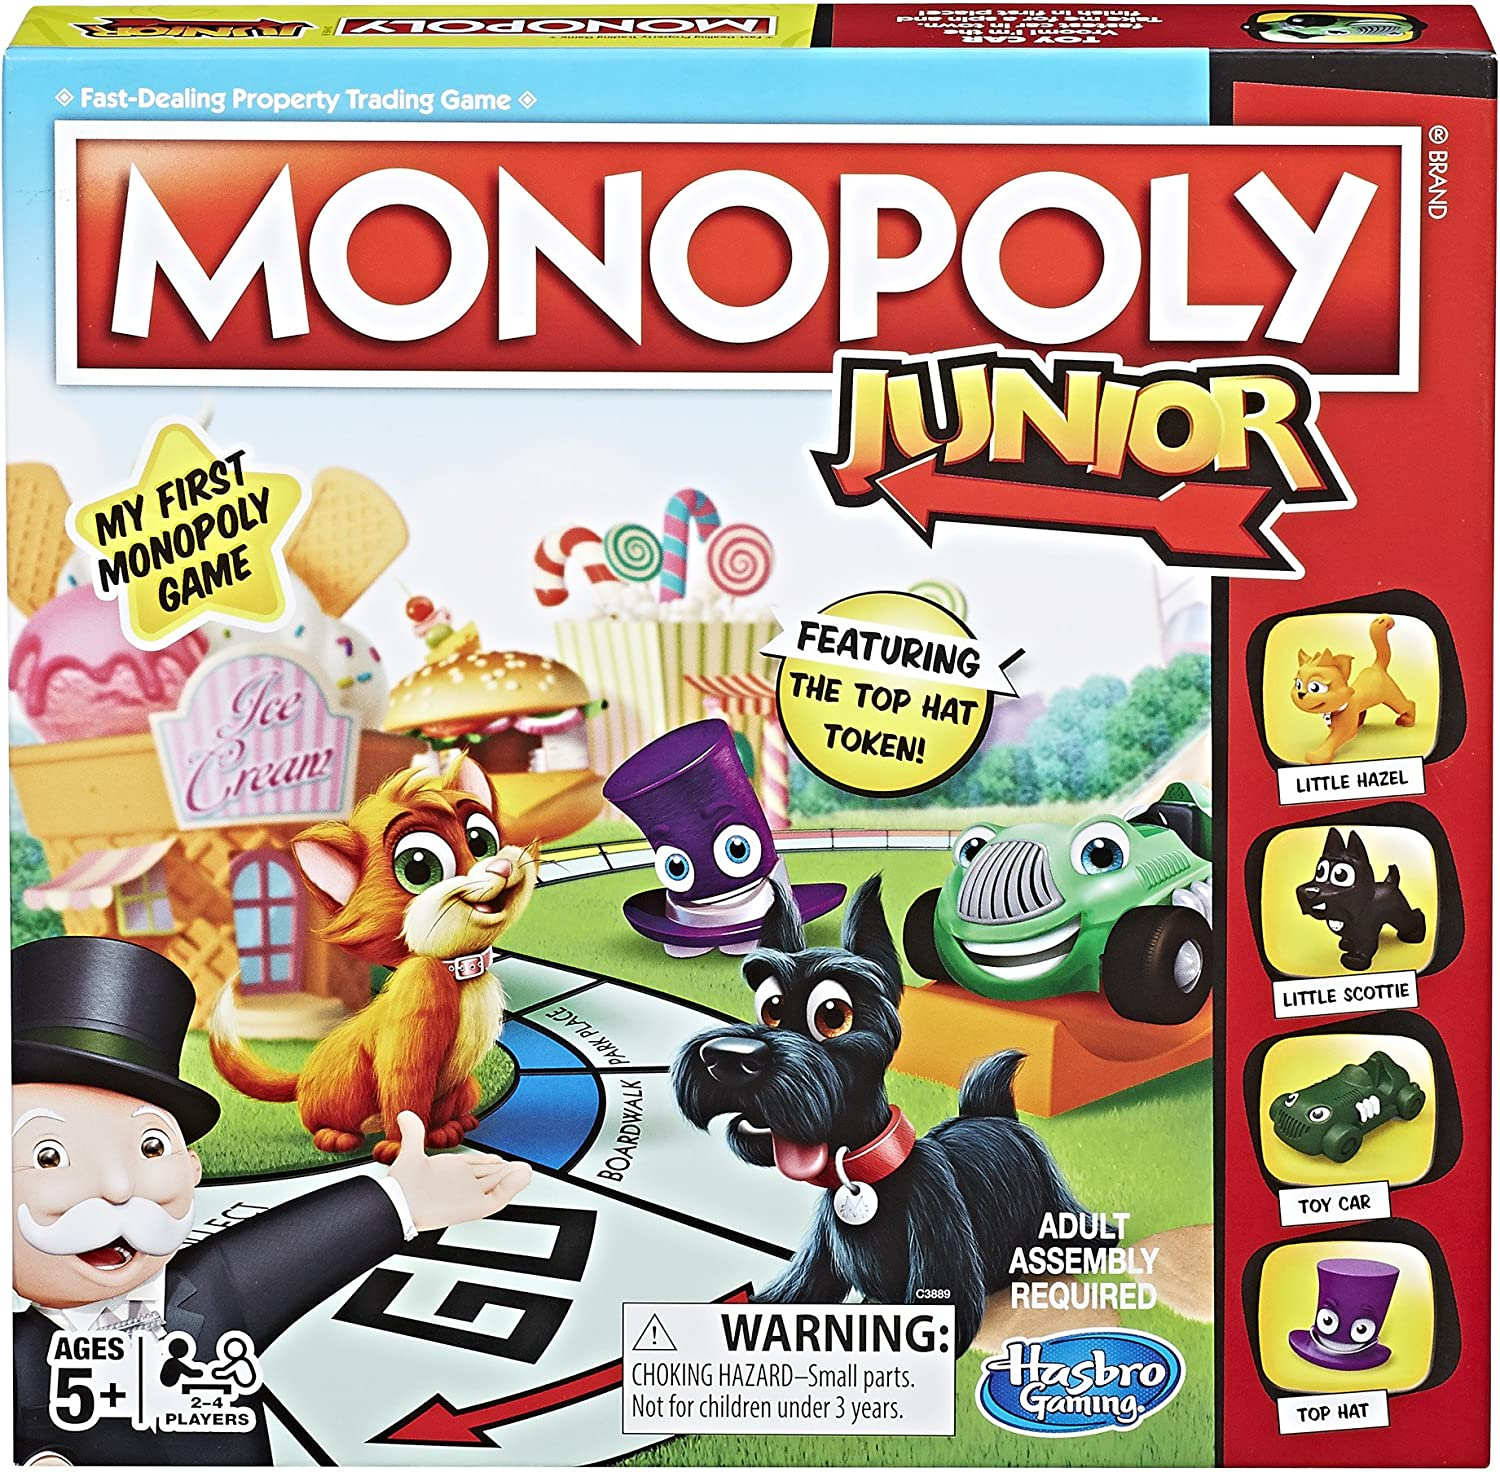 Monopoly Junior (Exclusivo de Amazon), Color versión Original (Hasbro-Import C3889): Amazon.es: Juguetes y juegos